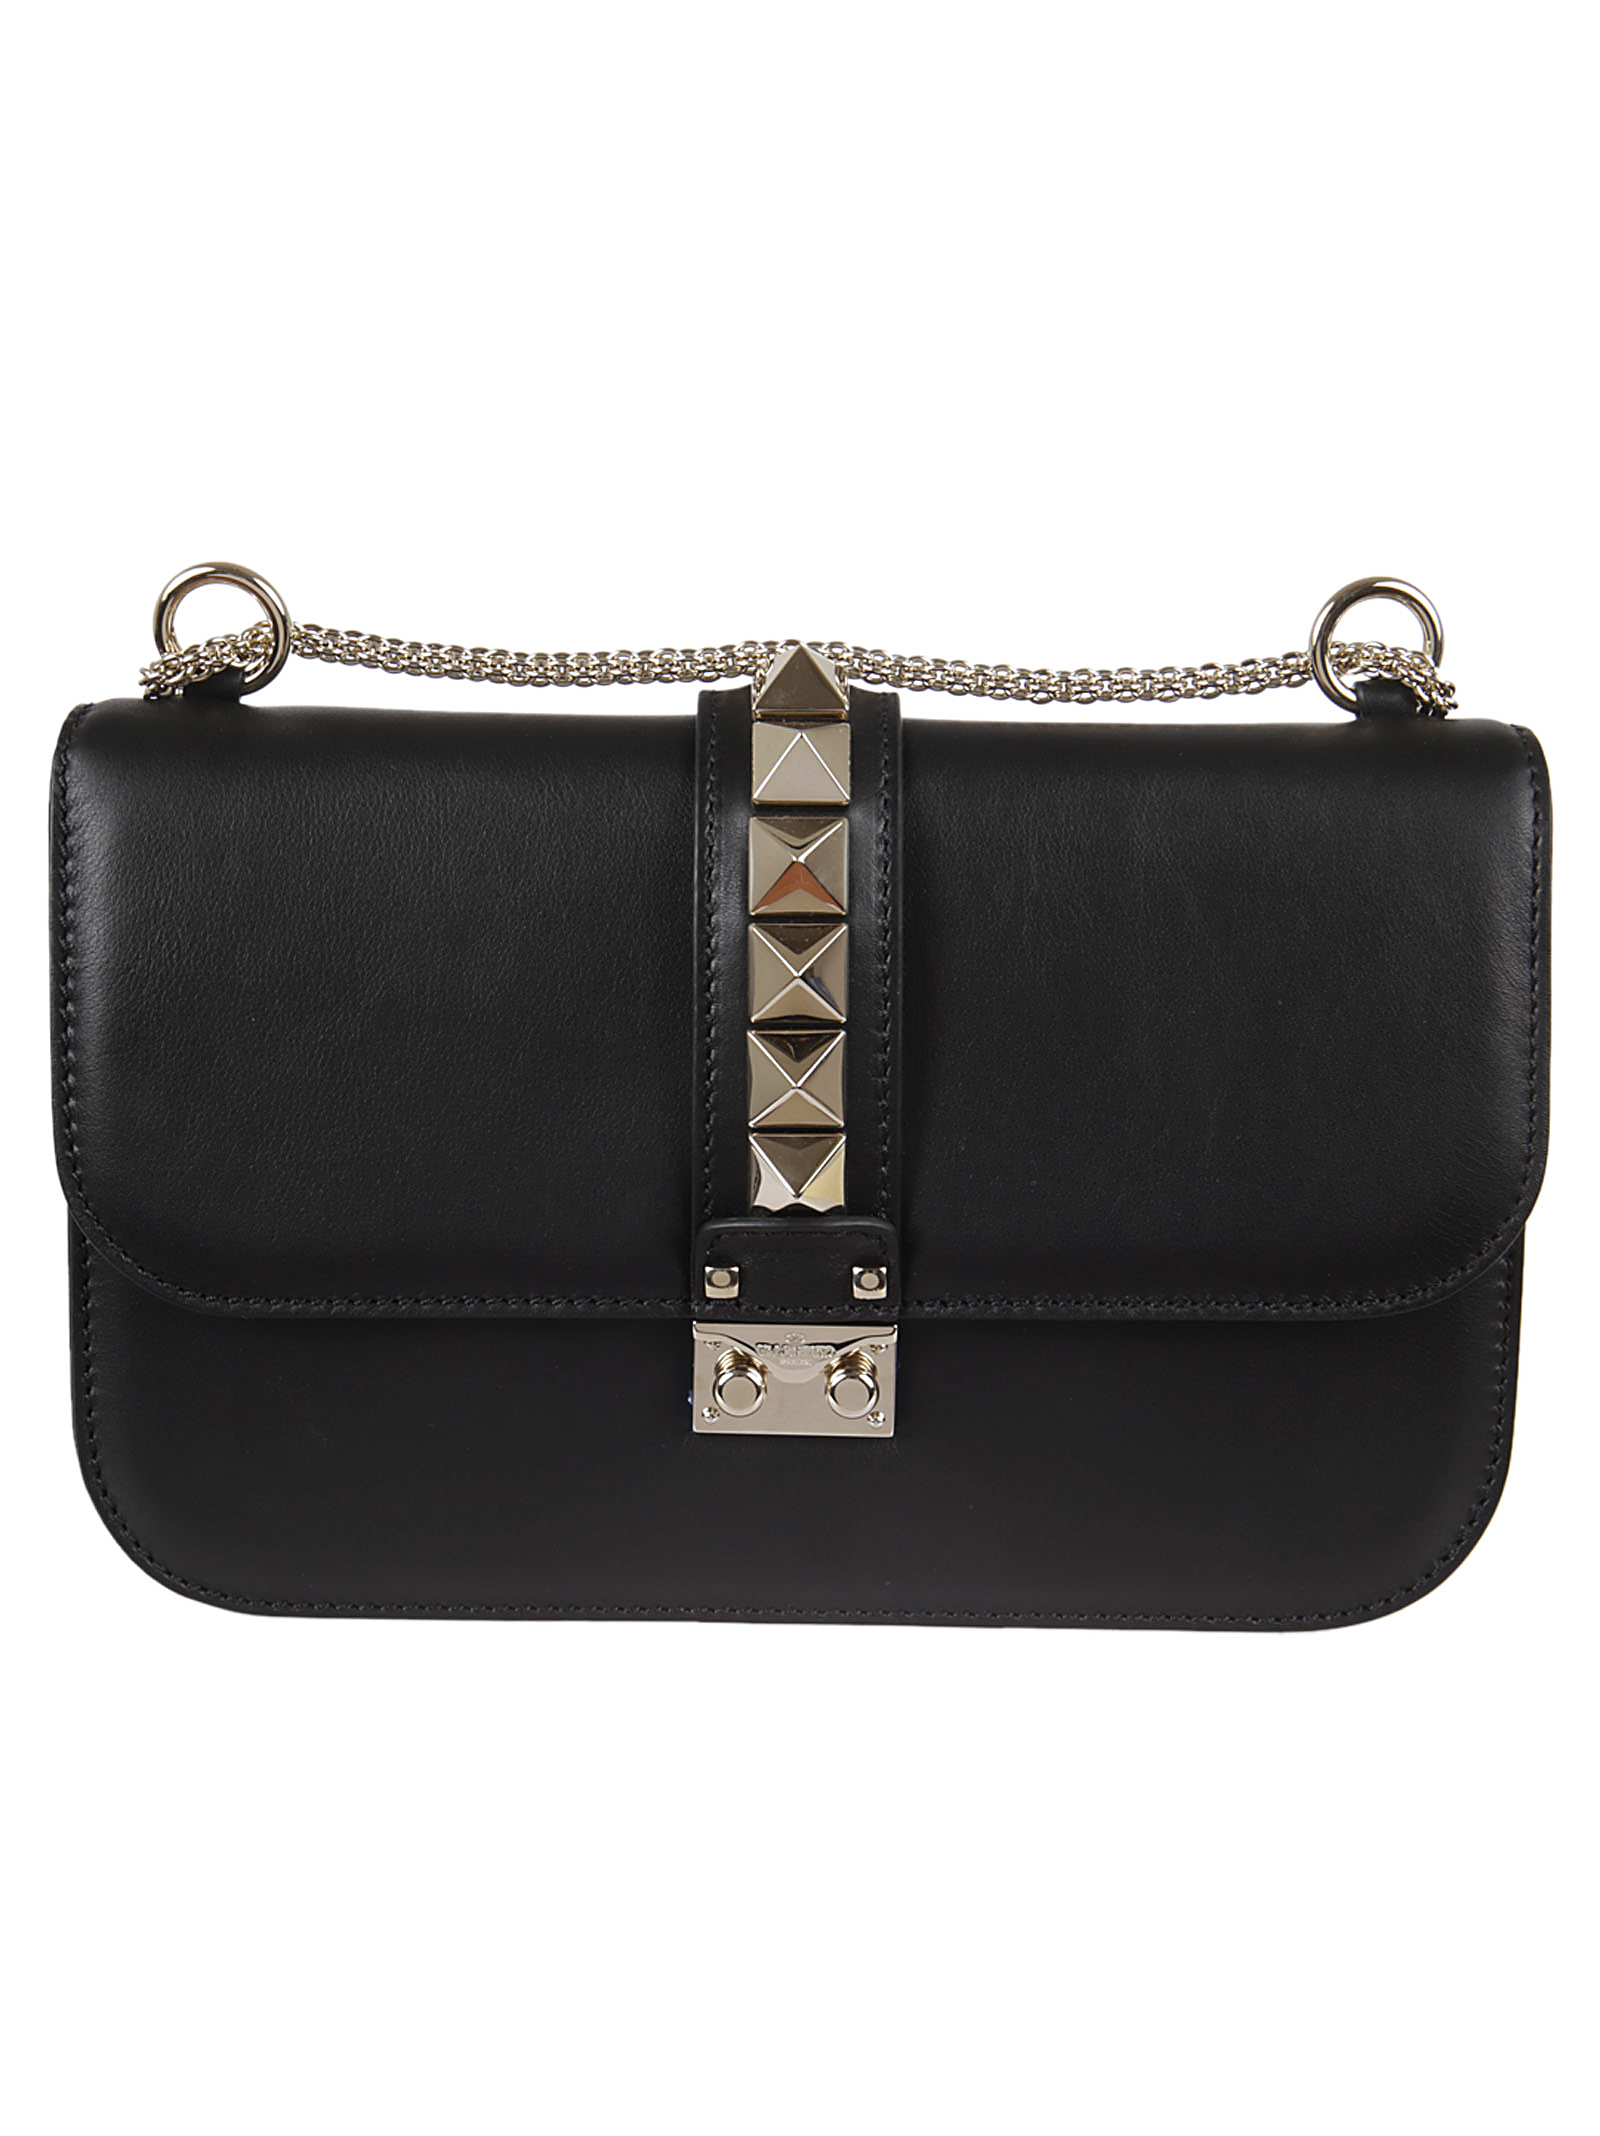 Valentino Garavani Valentino Glam Lock Shoulder Bag